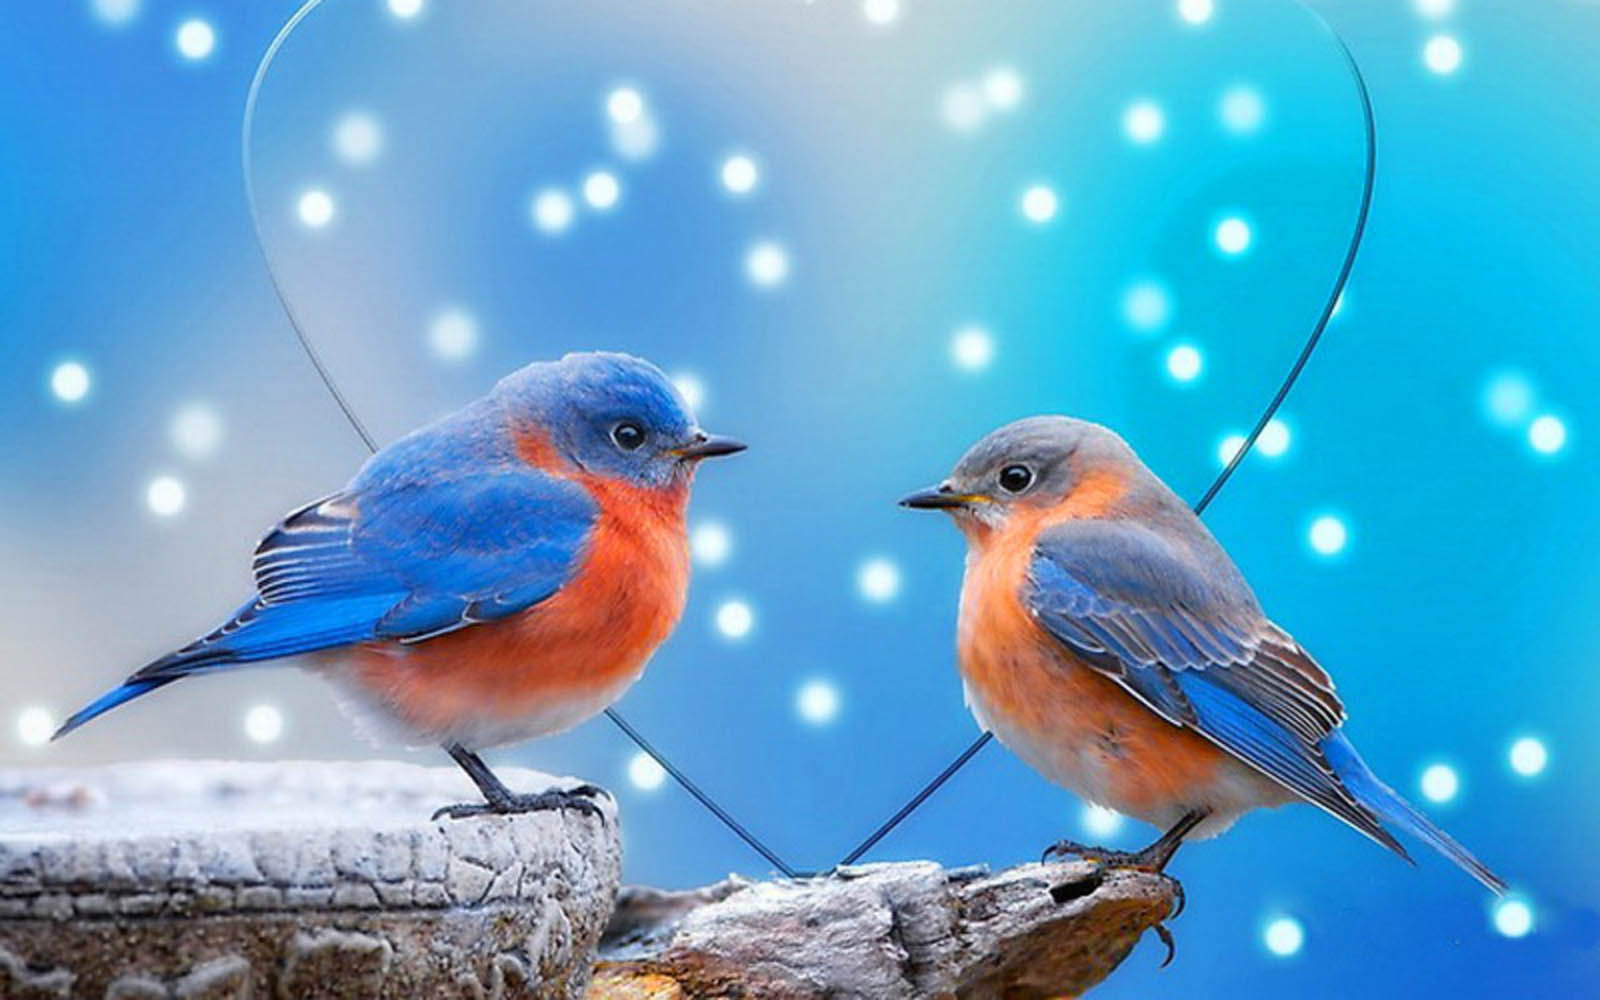 fc560cccb2 Love Birds Wallpapers 11 Love Birds Wallpapers